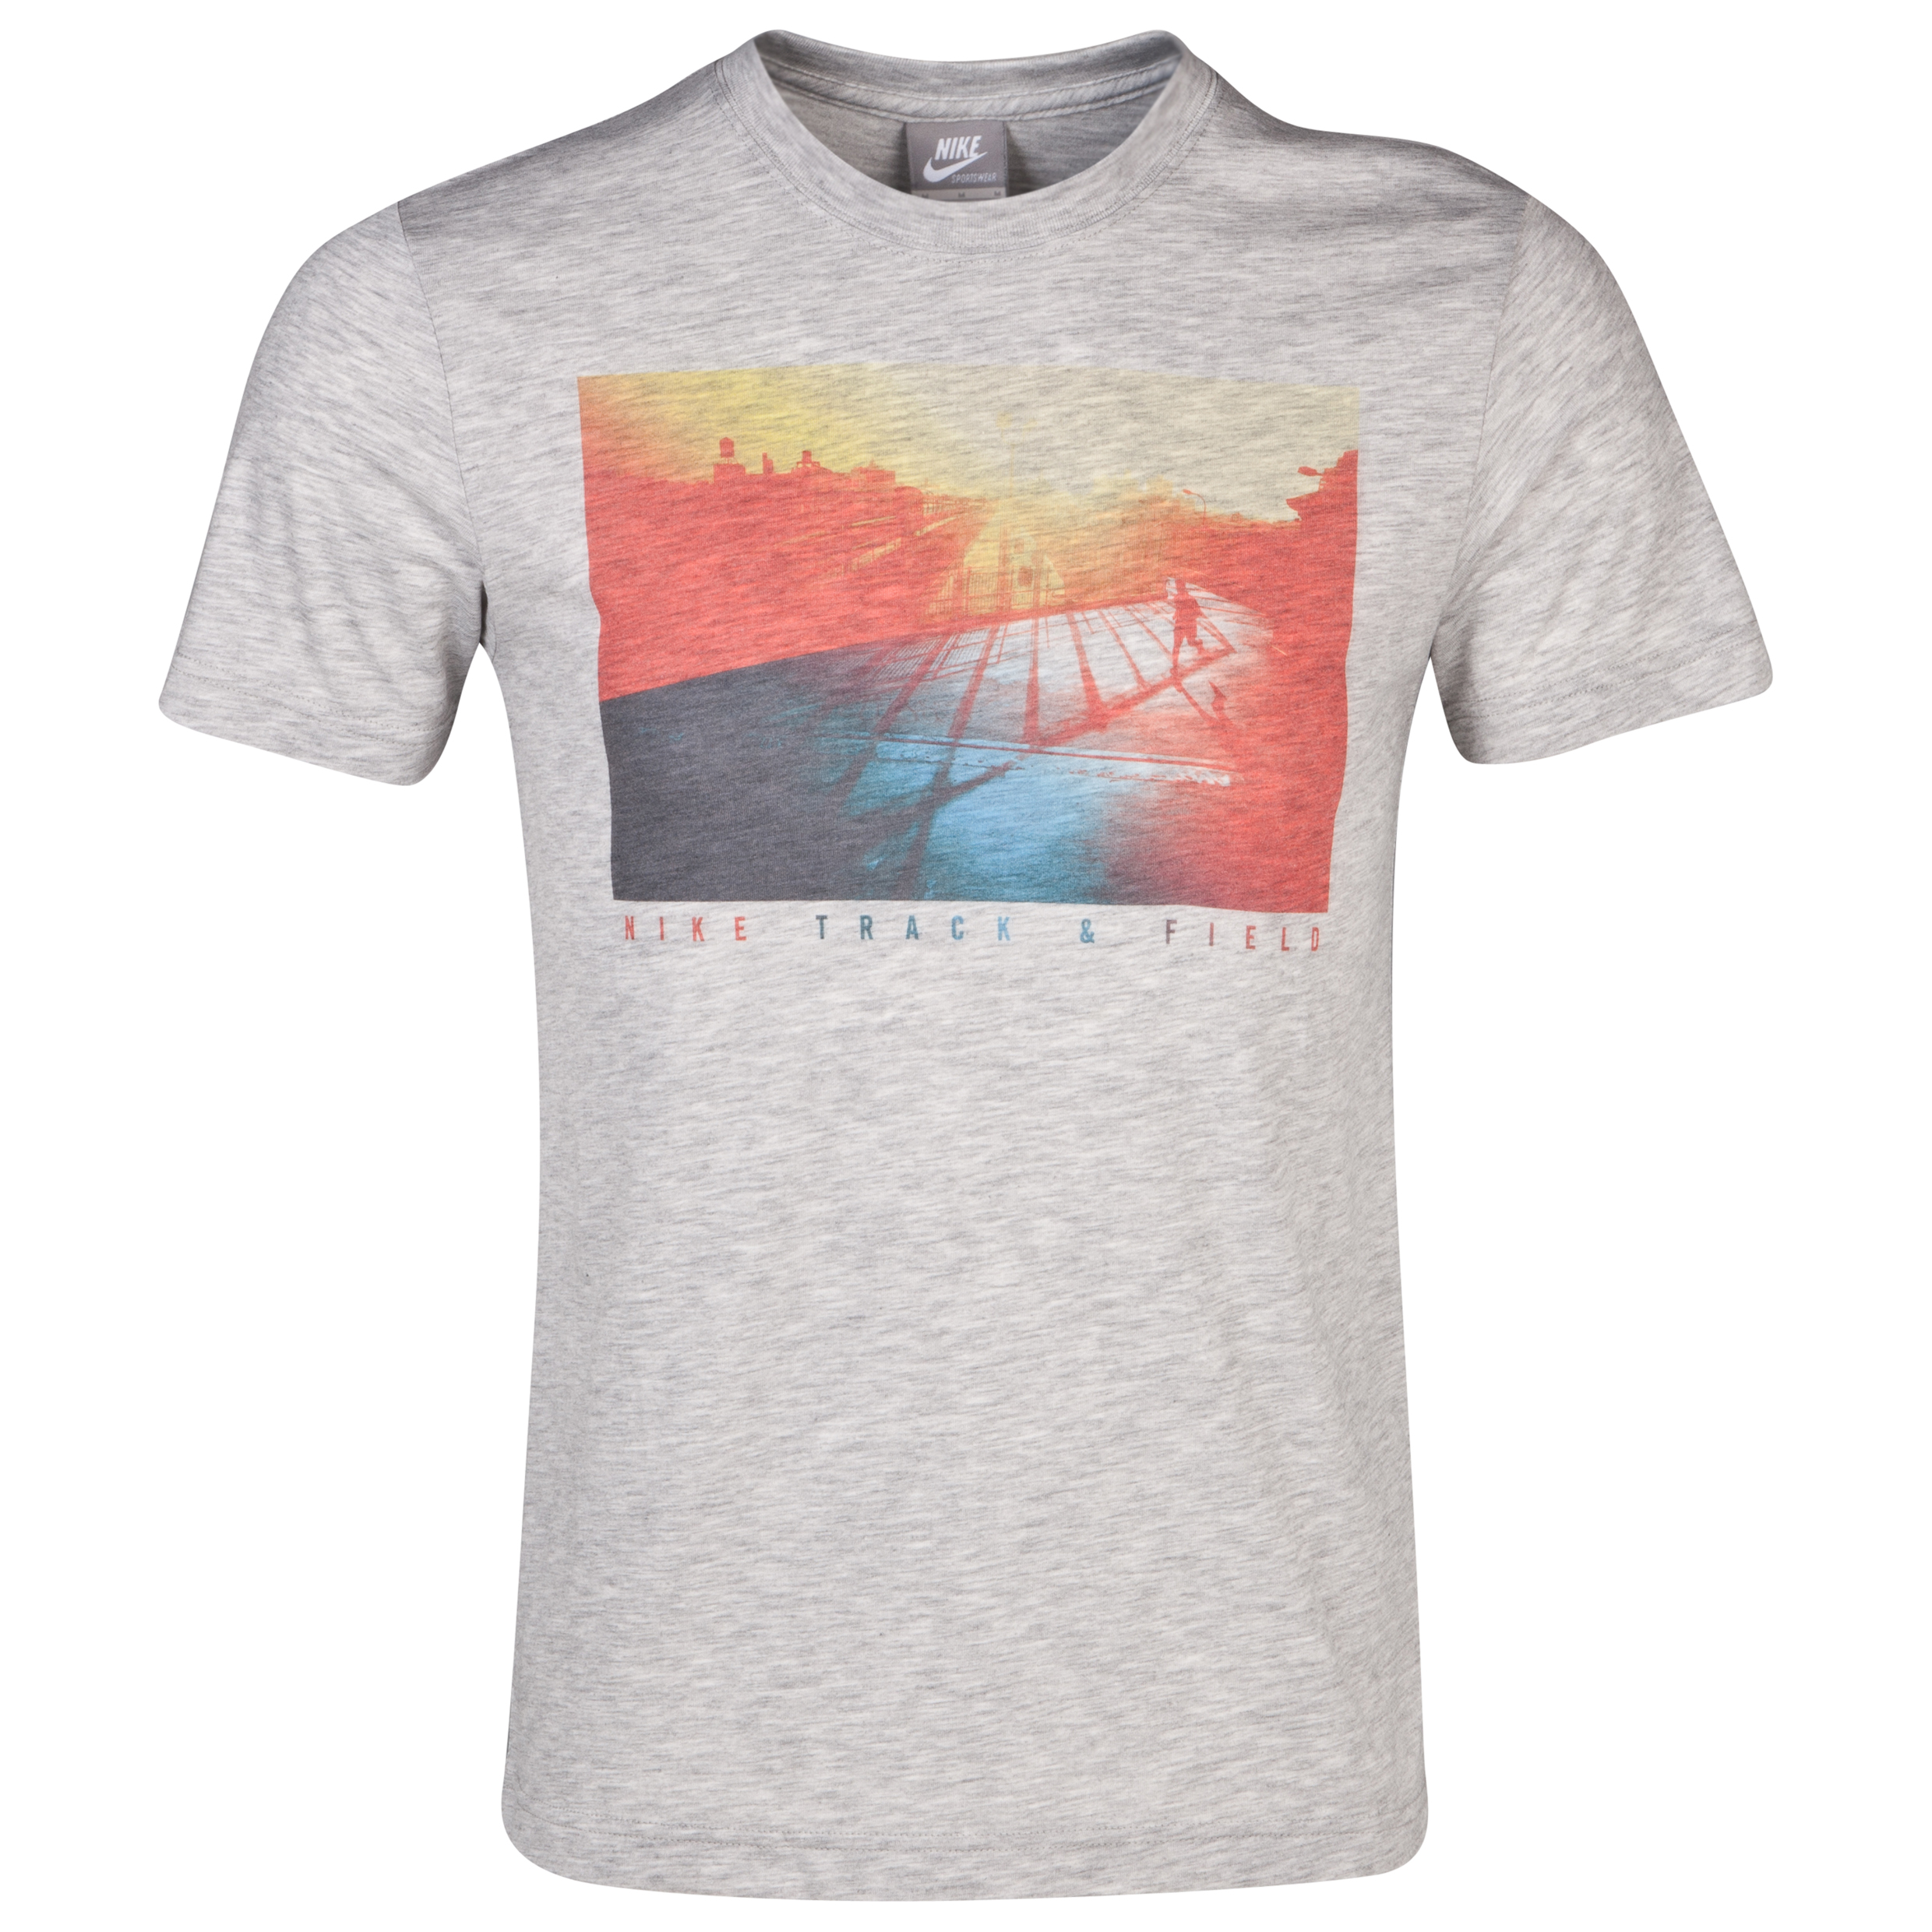 Nike Sunset Run Photo T-Shirt - Grey Heather